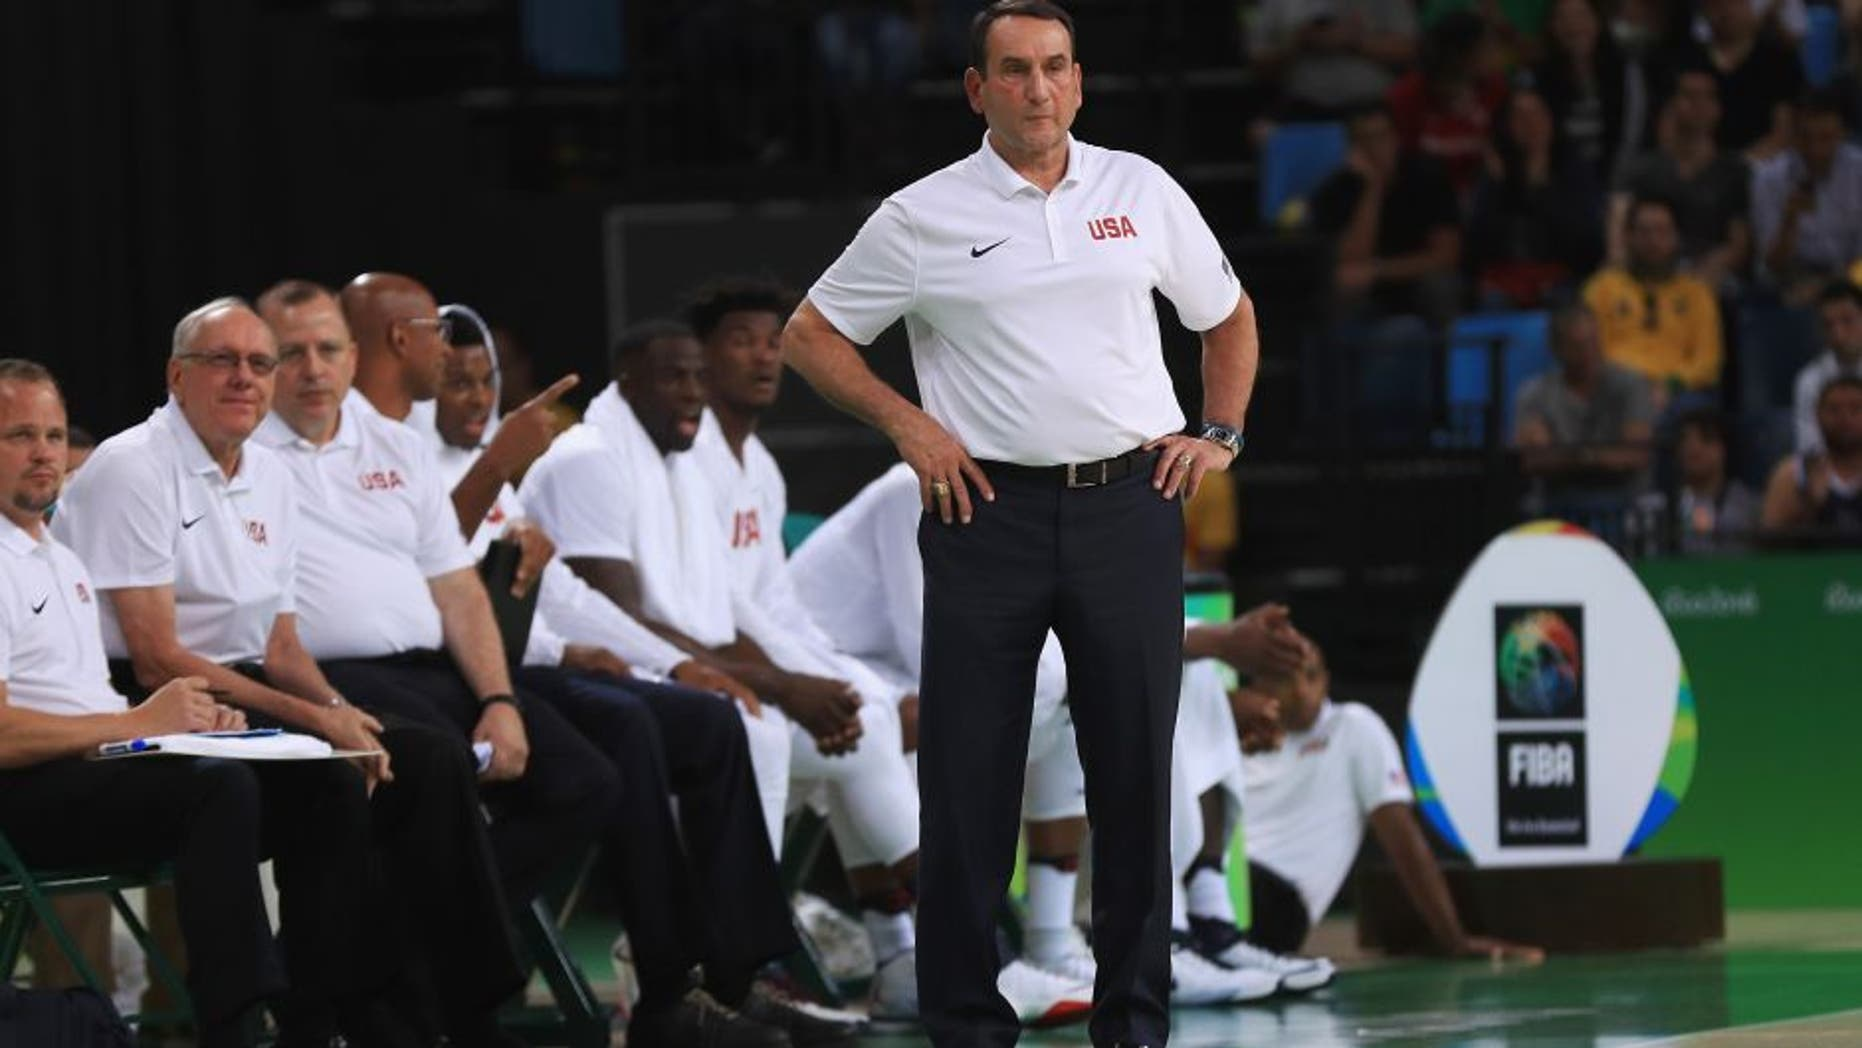 RIO DE JANEIRO, BRAZIL - AUGUST 08: Head coach Mike Krzyzewski of the United States basketball team looks on during the Men's Preliminary Round between the United States and Venezuela on Day 3 of the Rio 2016 Olympic Games at the Carioca Arena 1 on August 8, 2016 in Rio de Janeiro, Brazil. (Photo by Mike Ehrmann/Getty Images)